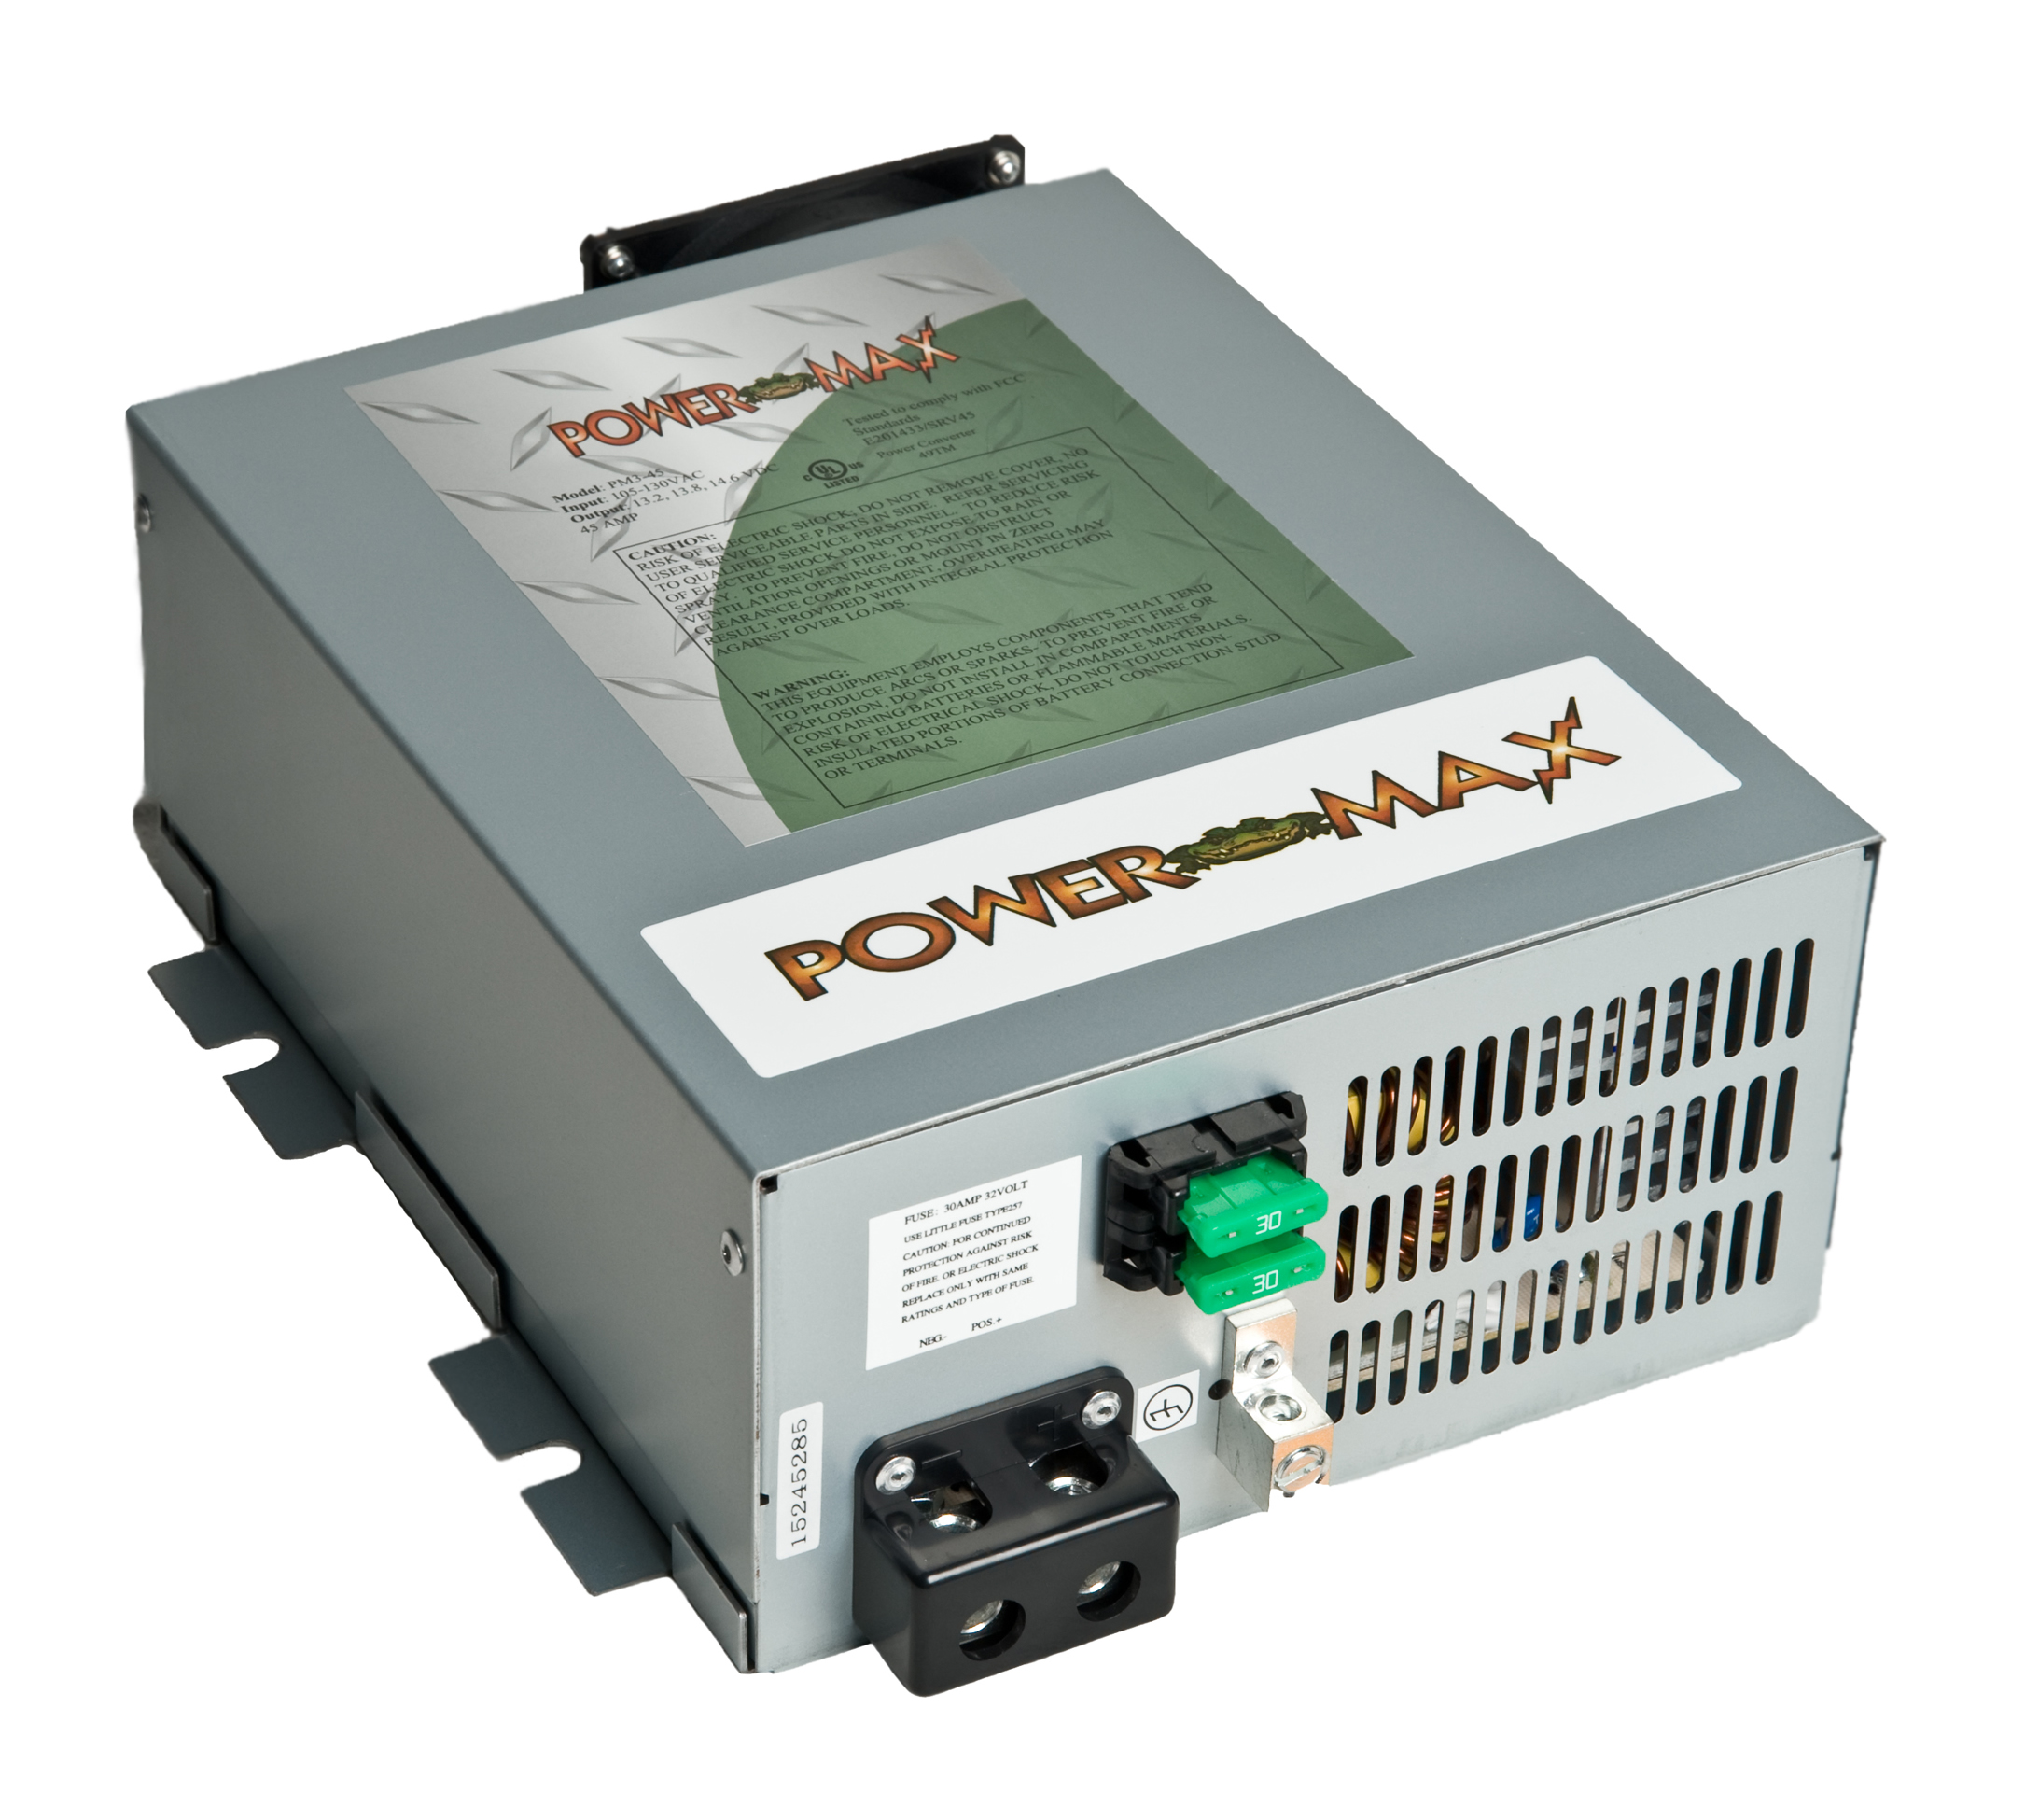 pm4 series 2 pm4 series power max converters  at gsmx.co